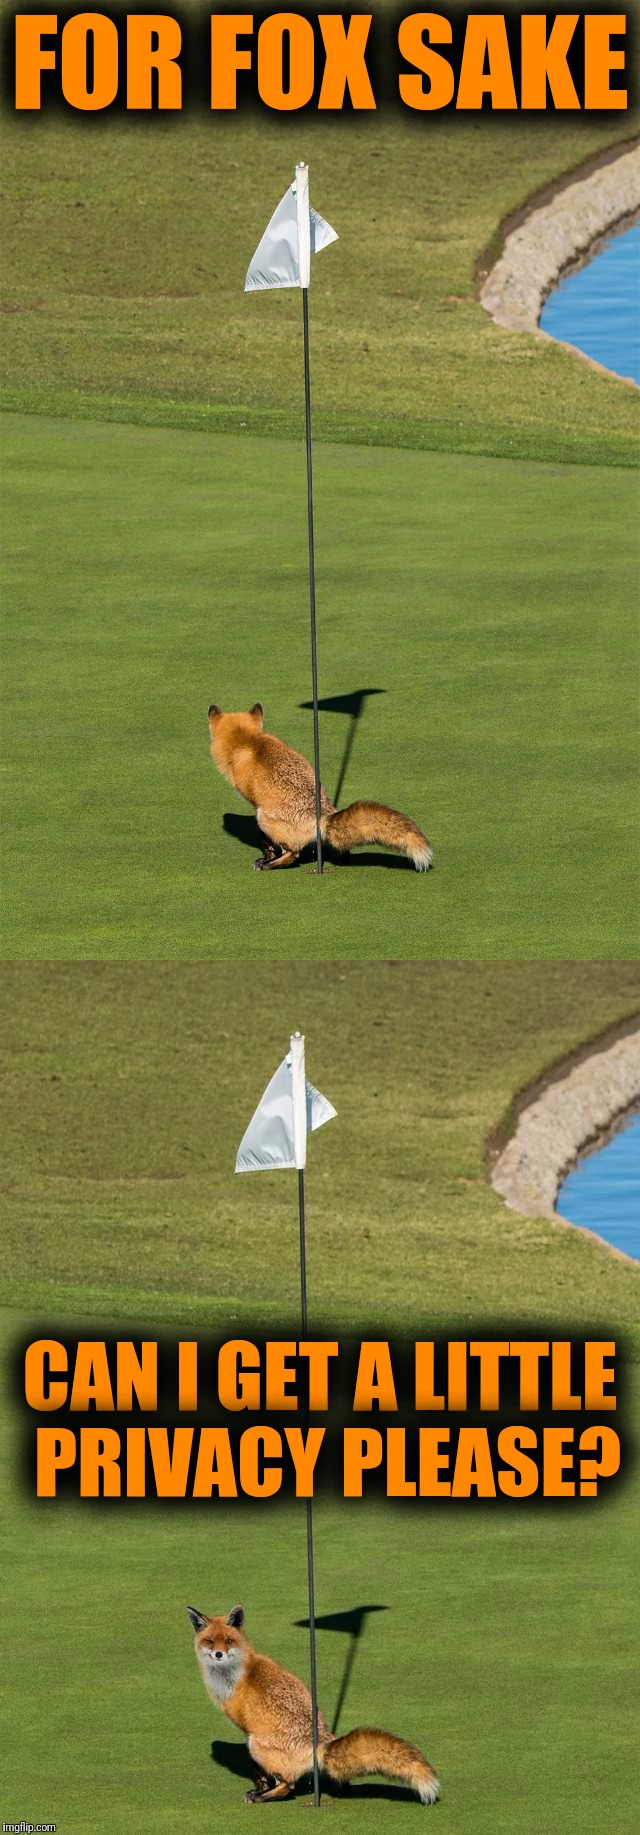 Foxholes | FOR FOX SAKE CAN I GET A LITTLE PRIVACY PLEASE? | image tagged in memes,fox,animals,golf | made w/ Imgflip meme maker